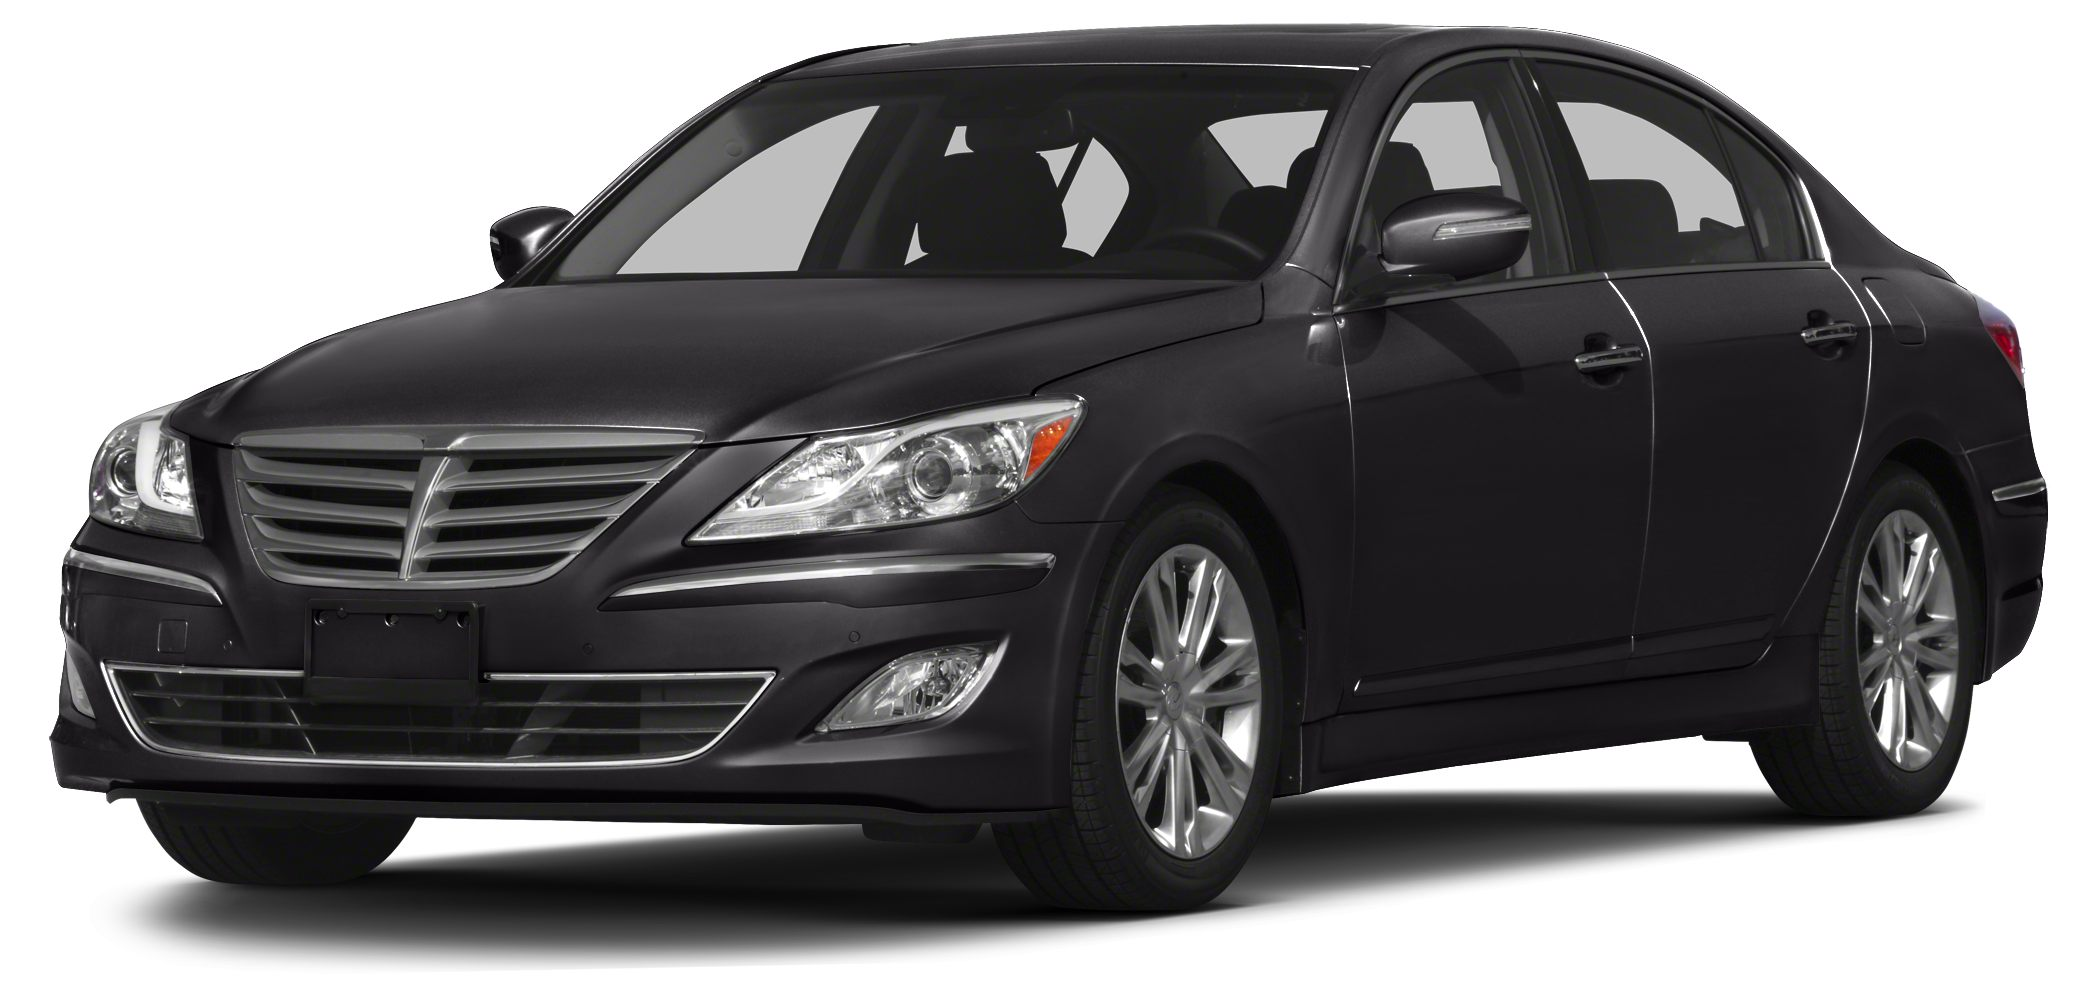 2013 Hyundai Genesis 38 Take a look at this sharp looking Genesis thats been all serviced by us a